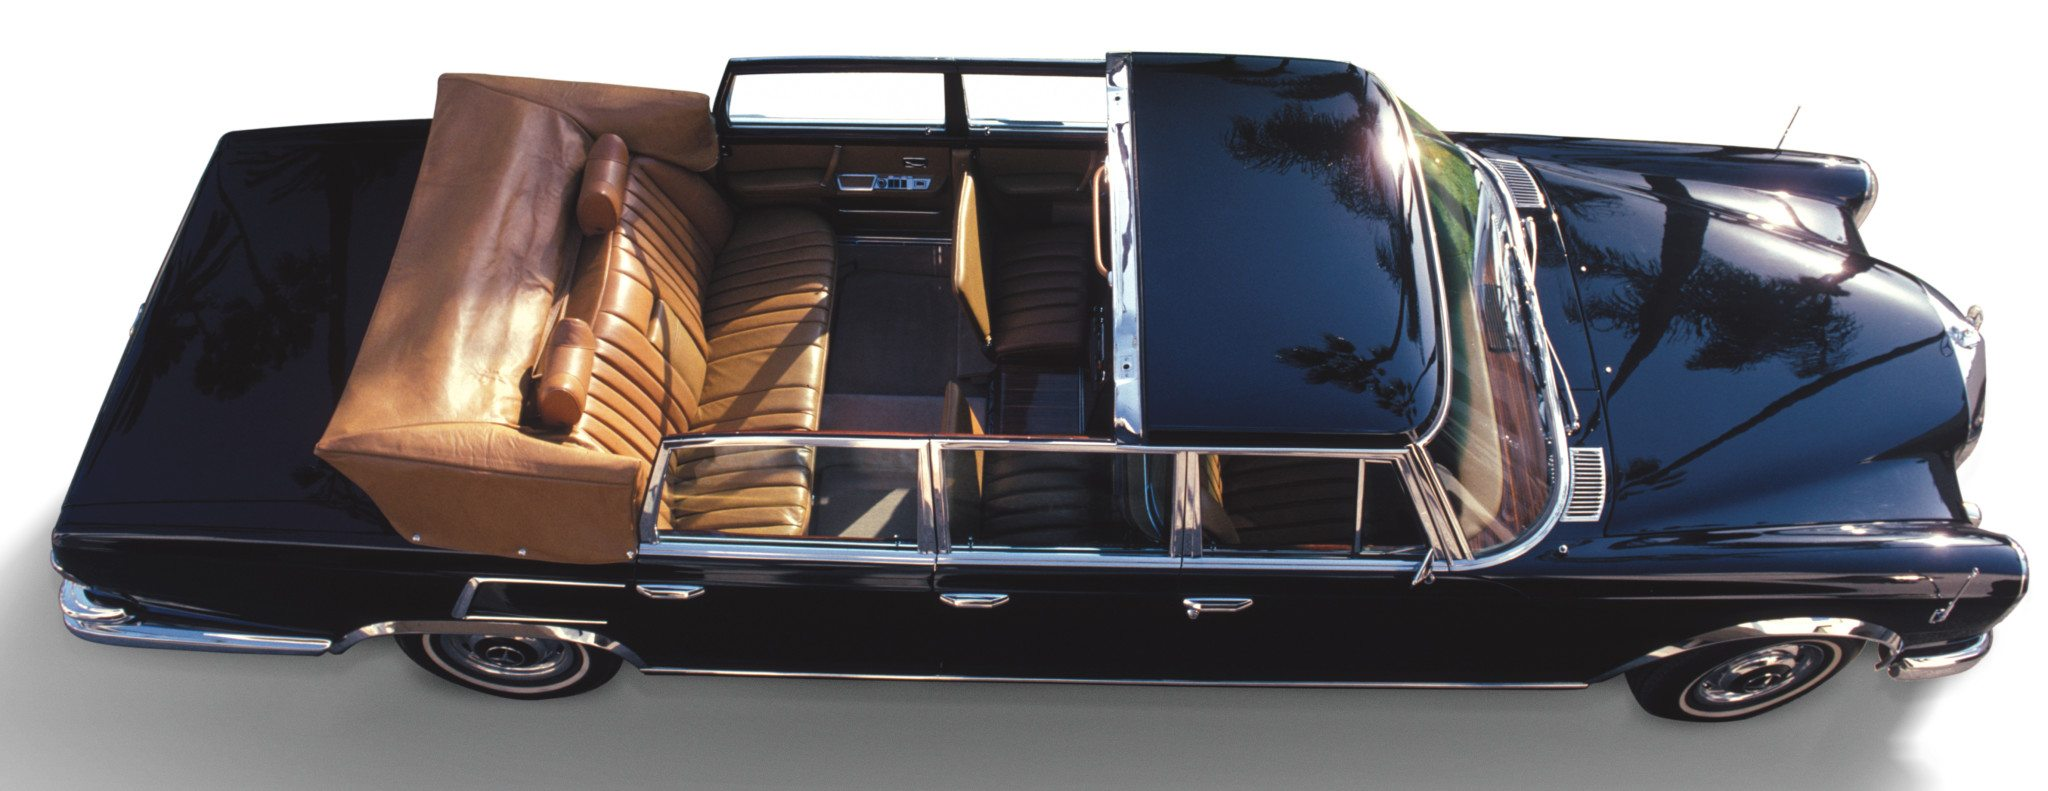 Mercedes-Benz 600 Pullman Landaulet top down